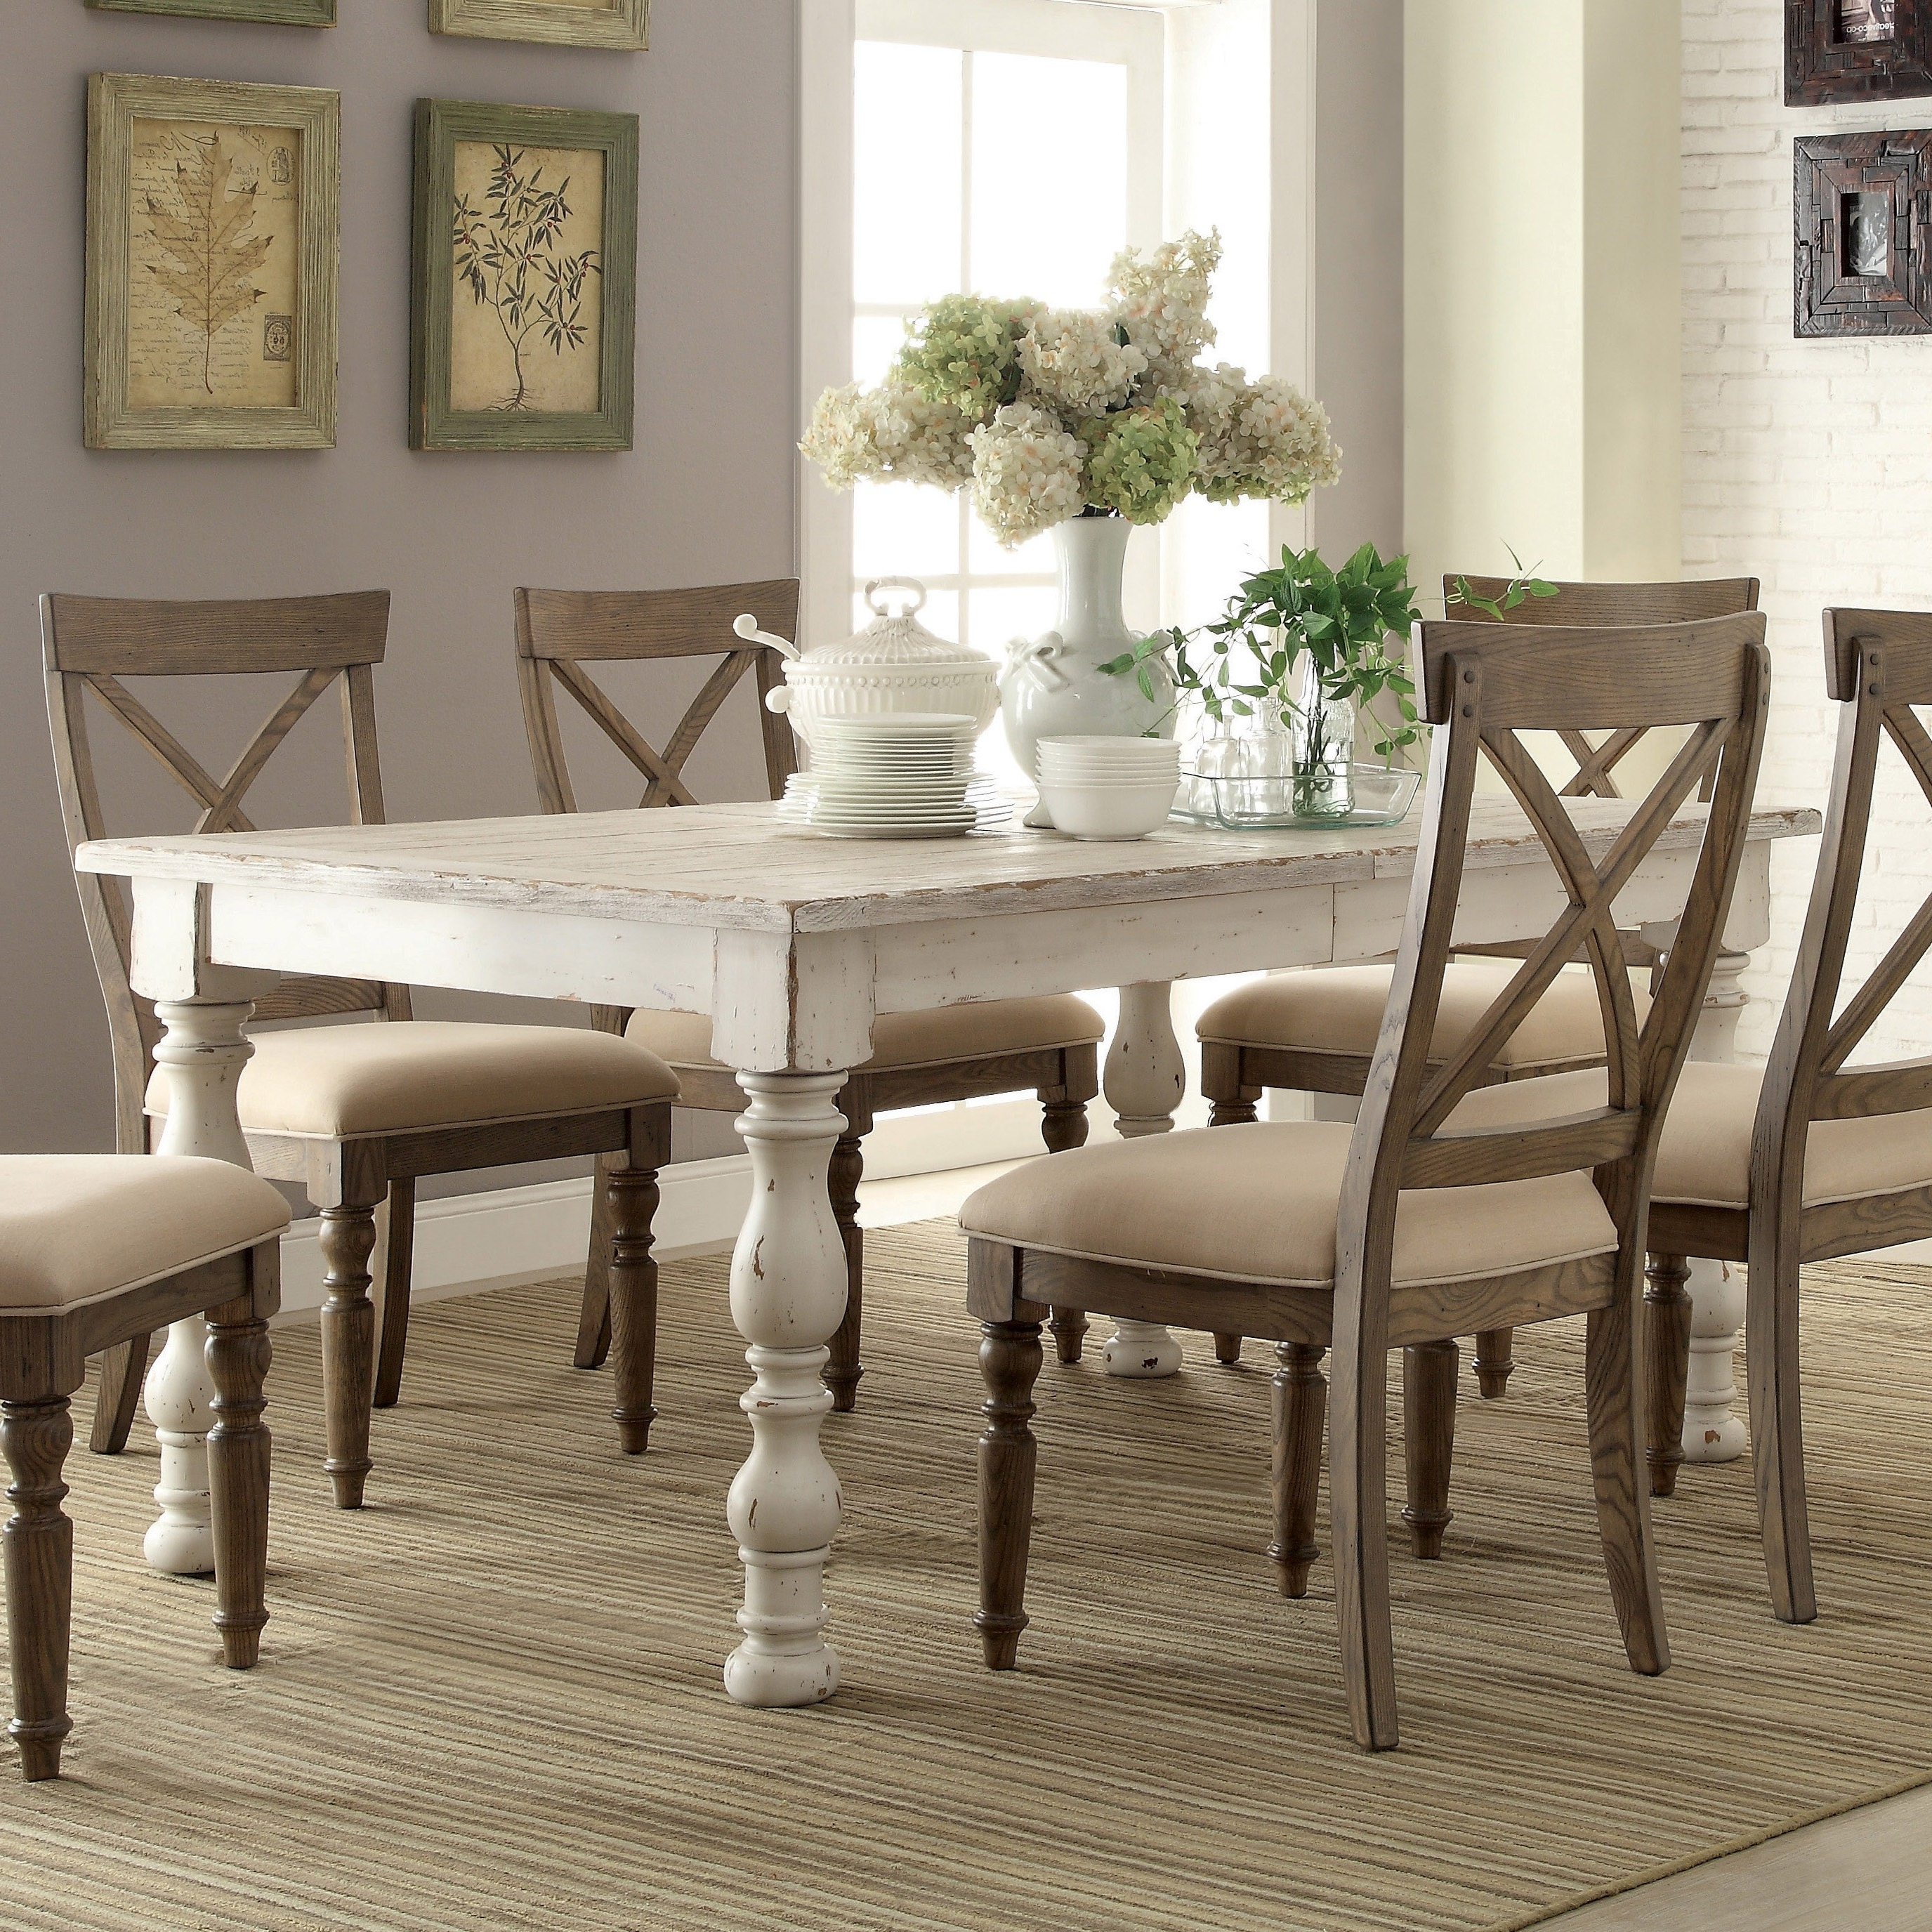 Humble Abode With Dining Room Tables And Chairs (View 12 of 25)